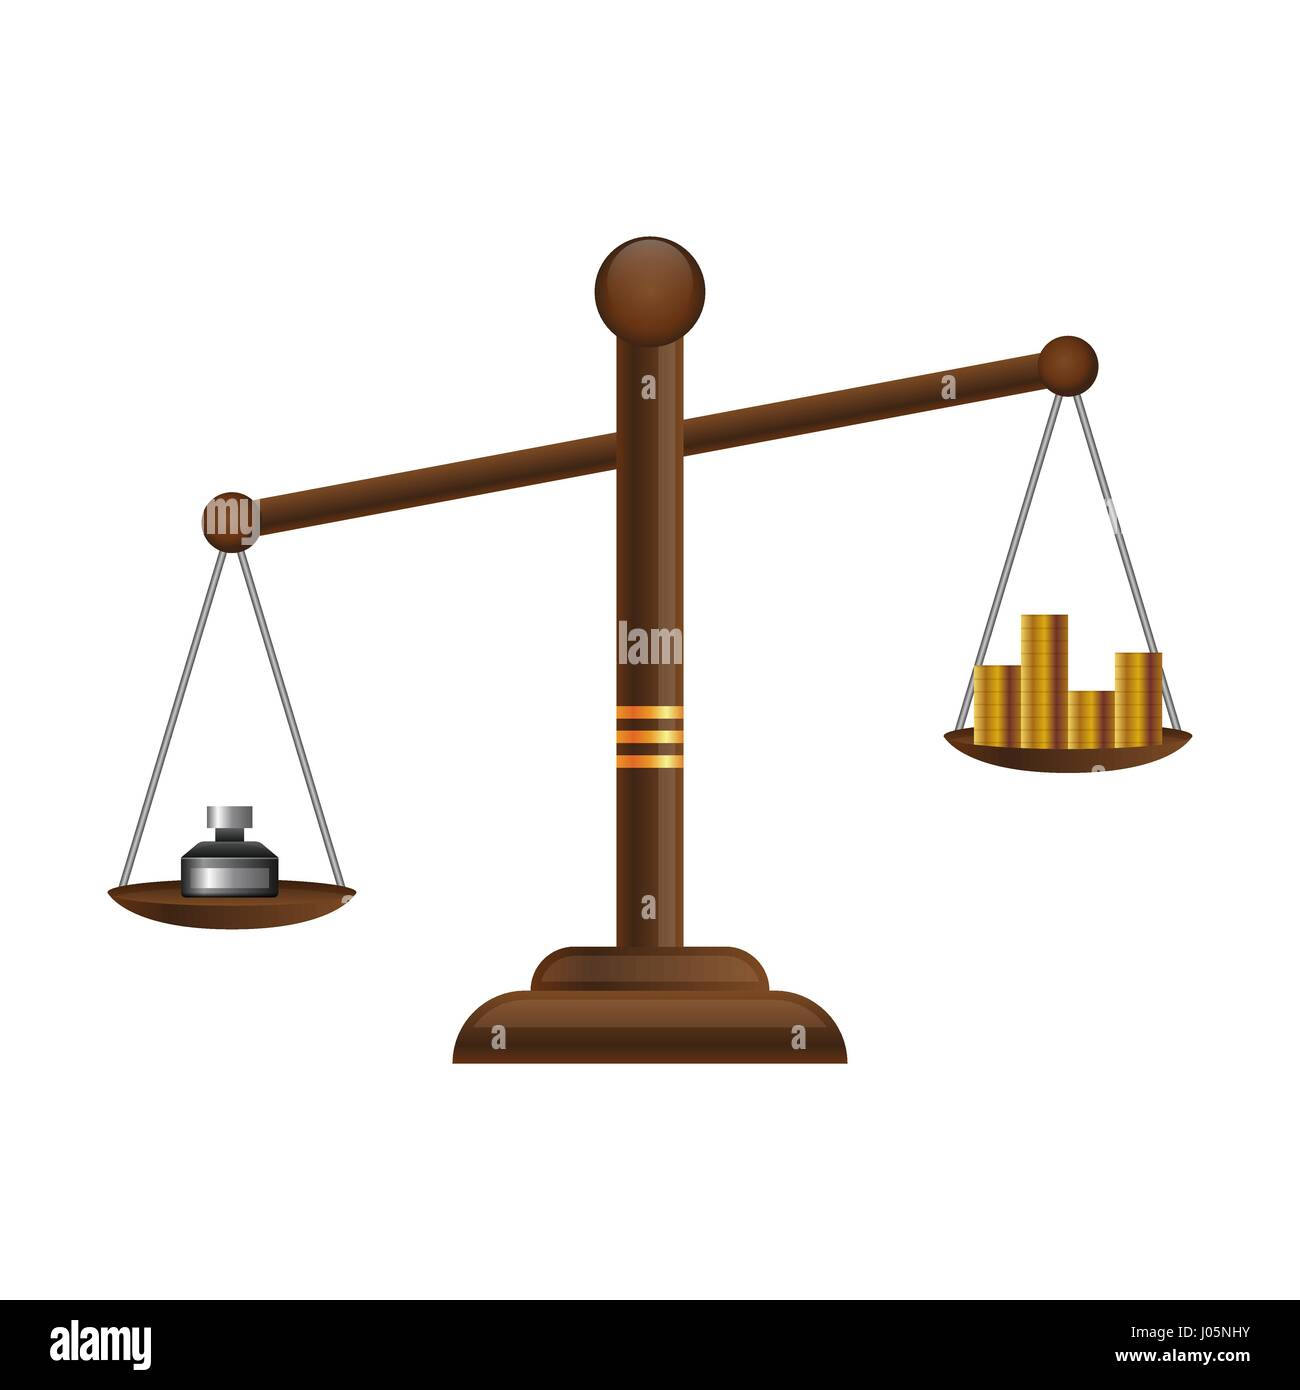 Justice Scales Icon Law Balance Symbol Libra Flat Design With Gold